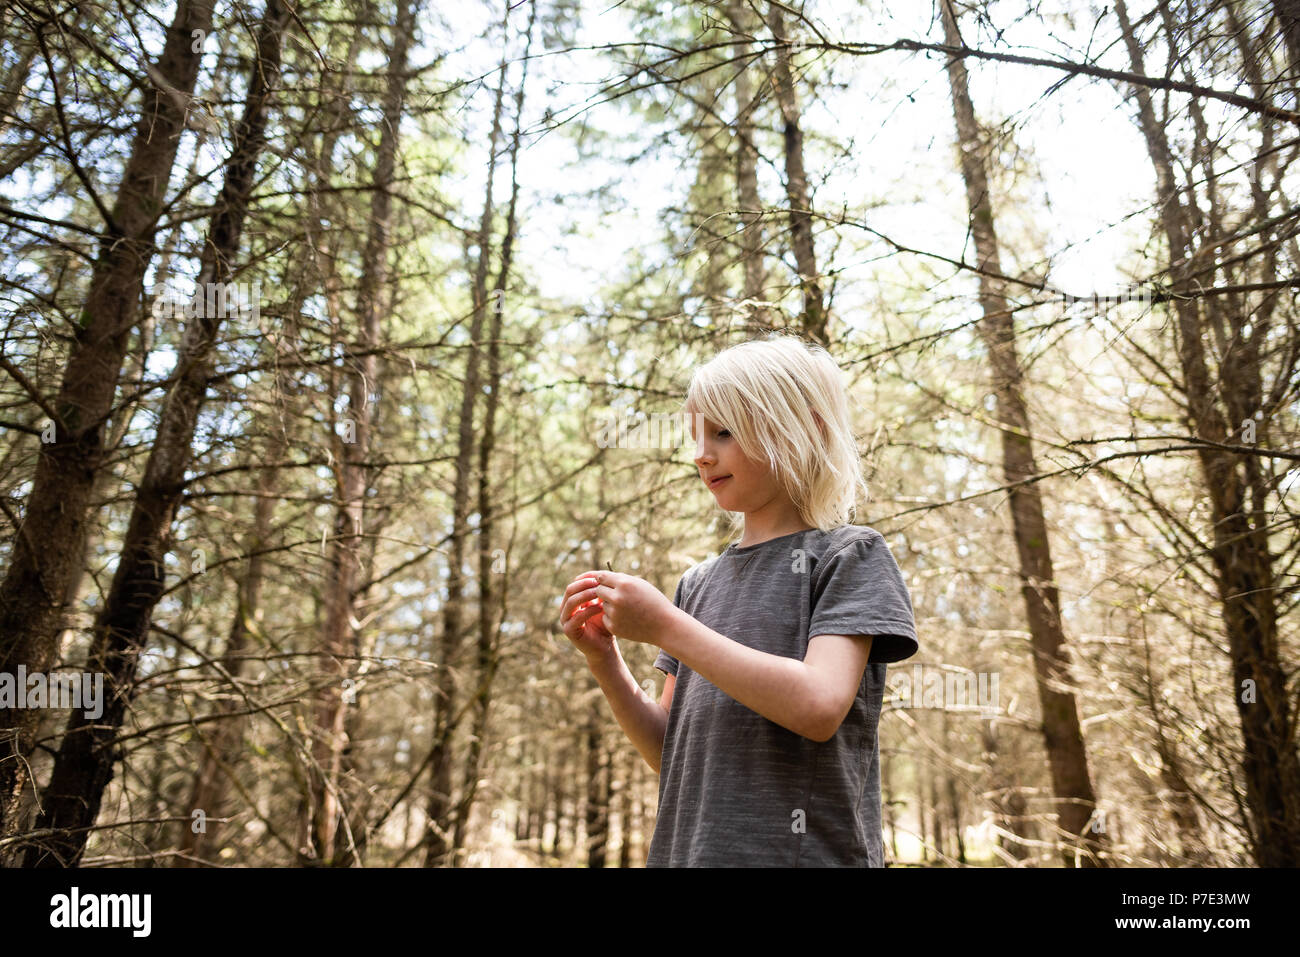 Blonde haired boy in forest - Stock Image